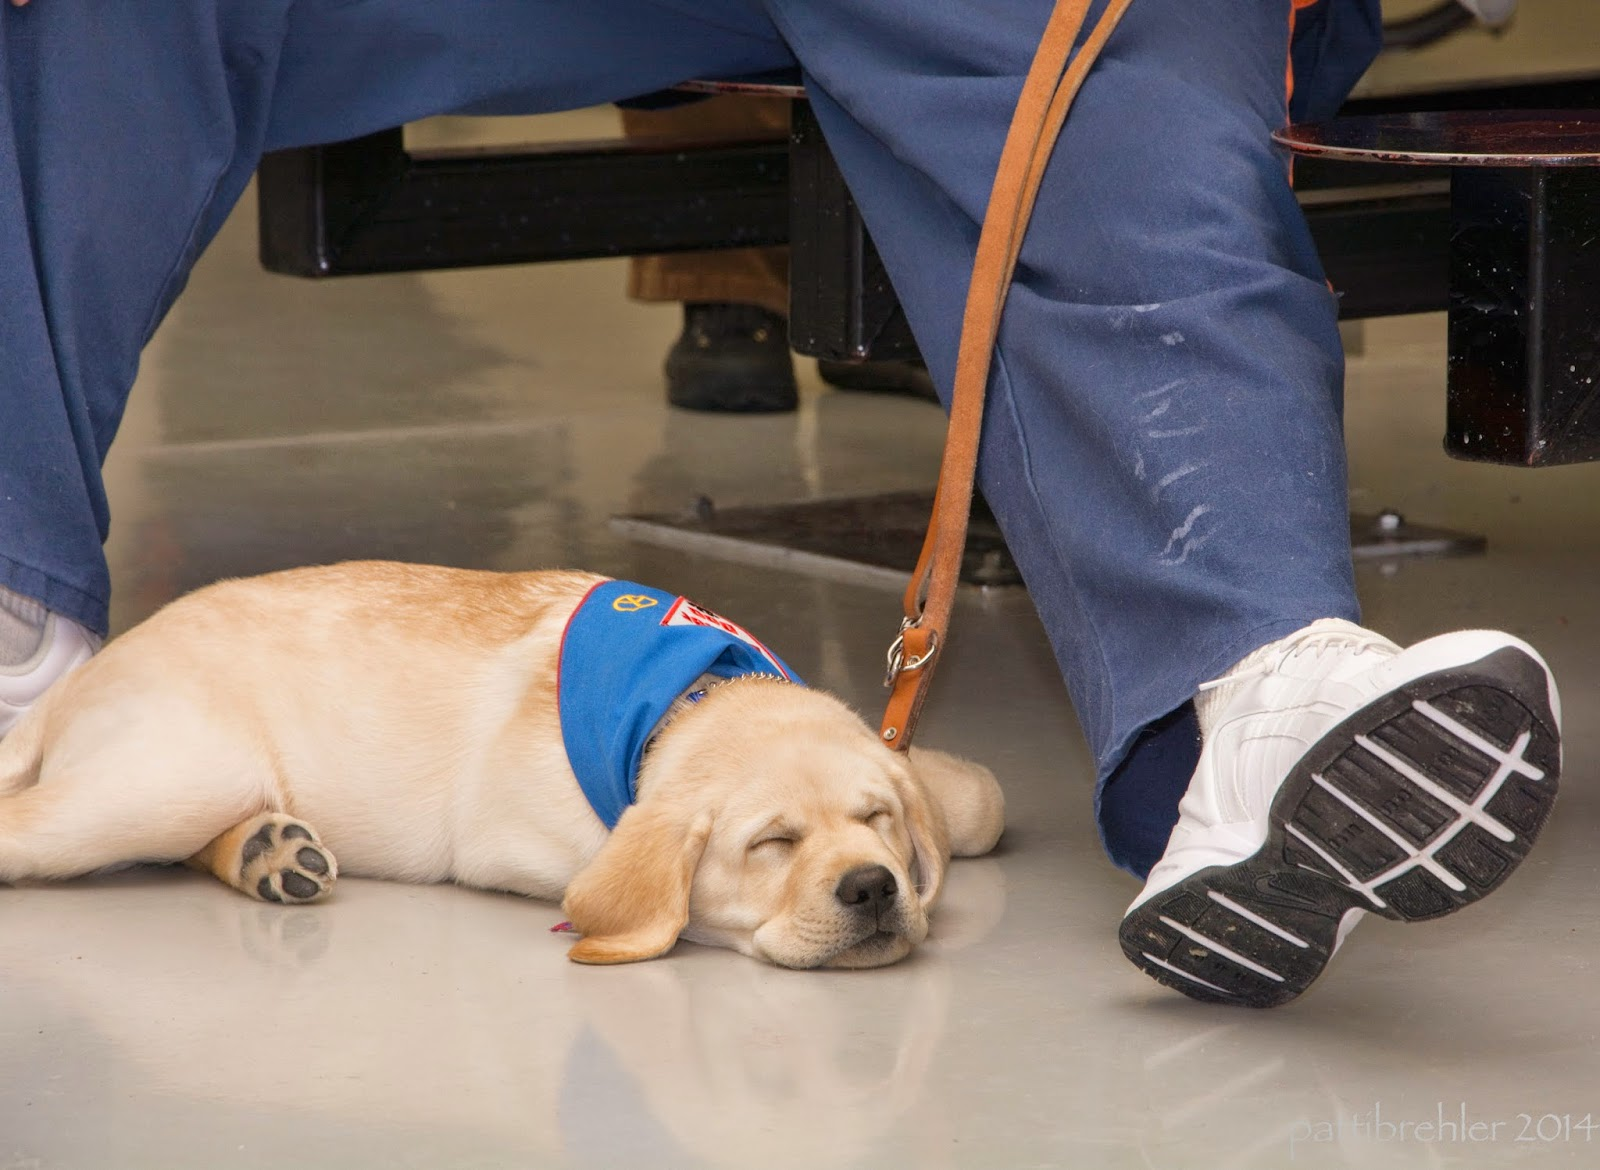 The small yellow lab is fast asleep on the tile floor. He is wearing a blue bandana. His leash is being held by a man that is out of the picture, except for his legs. The man's left leg is extended out next to the puppy. The man is wearing blue pants and white tennis shoes.